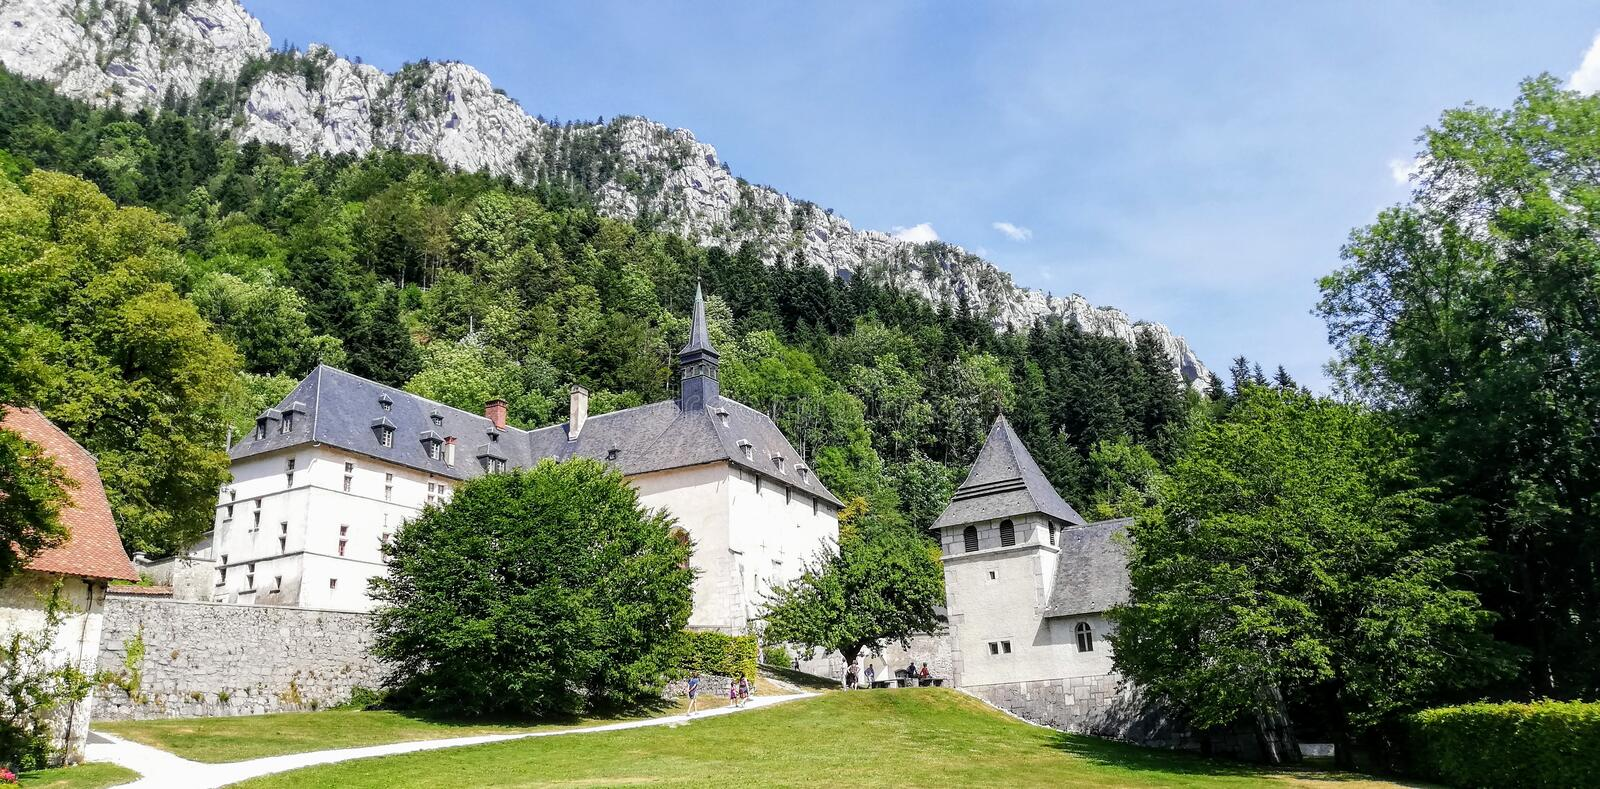 The historic building of the Carthusian monastery in France. Photo taken in July 2019 about The historic building of the Carthusian monastery in France stock photos